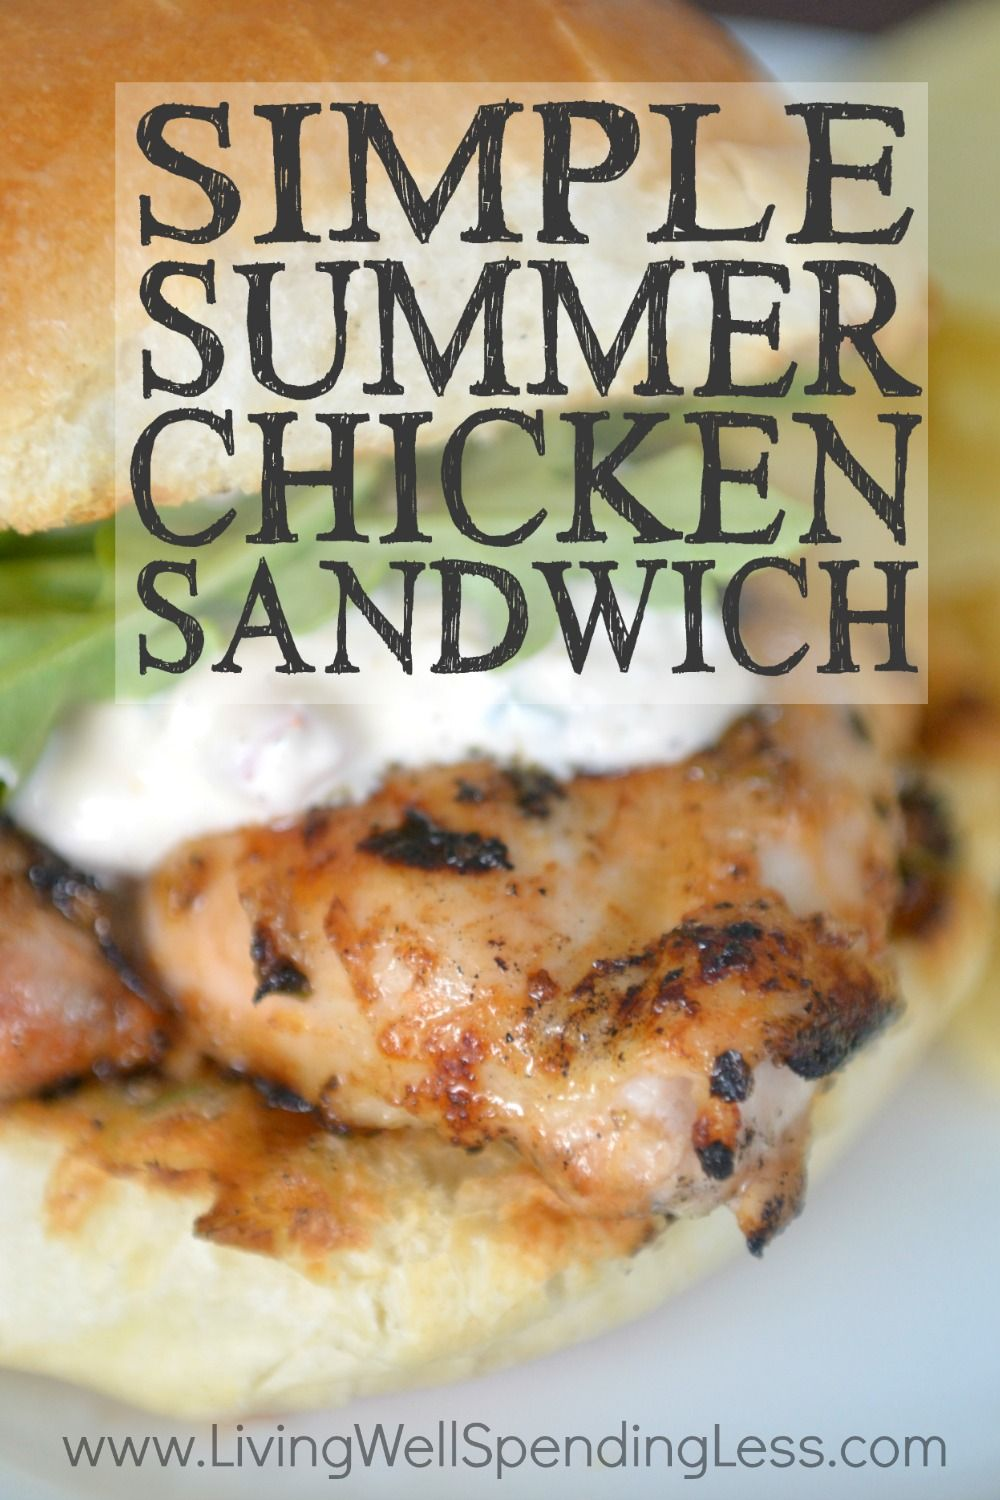 Looking+for+an+easy+summertime+meal+that+comes+together+in+no-time+flat?++This+simple+summer+chicken+sandwich+whips+up+in+minutes,+then+can+be+frozen+ahead+for+an+effortless+weeknight+meal.++Packed+with+flavor,+it+is+definitely+one+your+family+will+ask+for+again+and+again!++